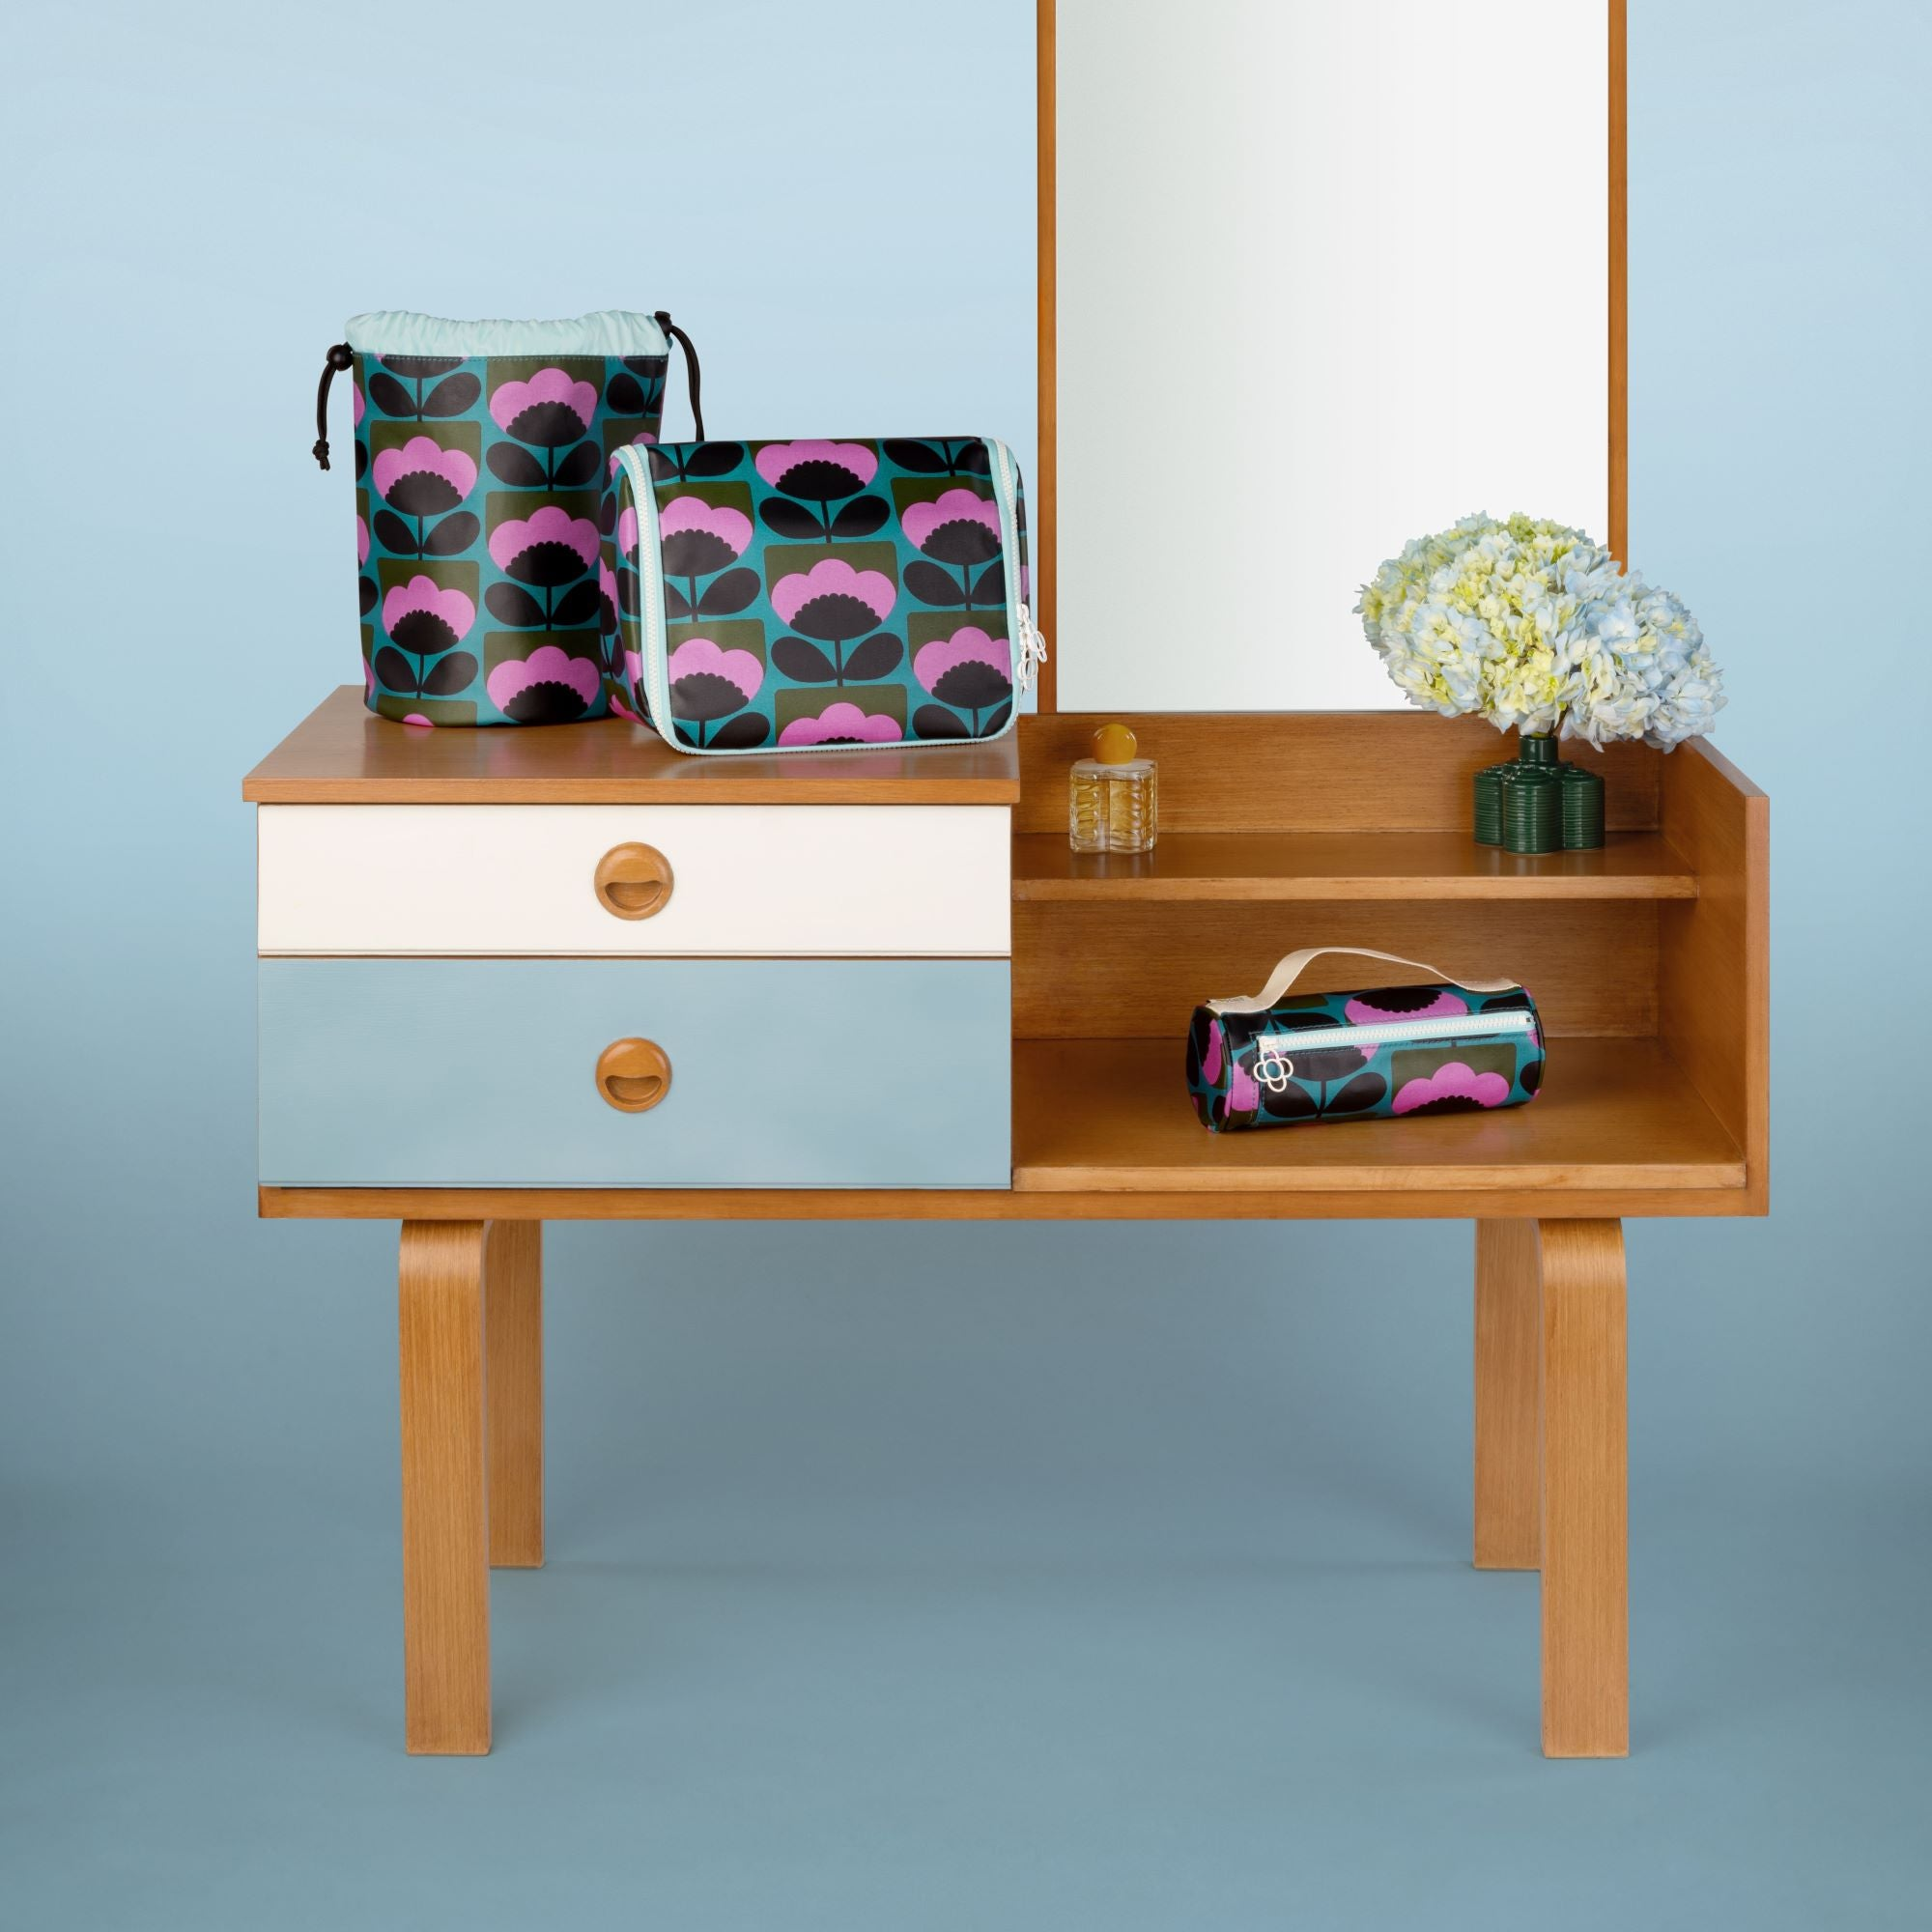 Stunning new range of Orla Kiely cushions and toiletry bags as well as Orla's iconic range of stylish kitchenware, gardenware and accessories such as watches and clocks, all at Bouchic, Isle of Wight